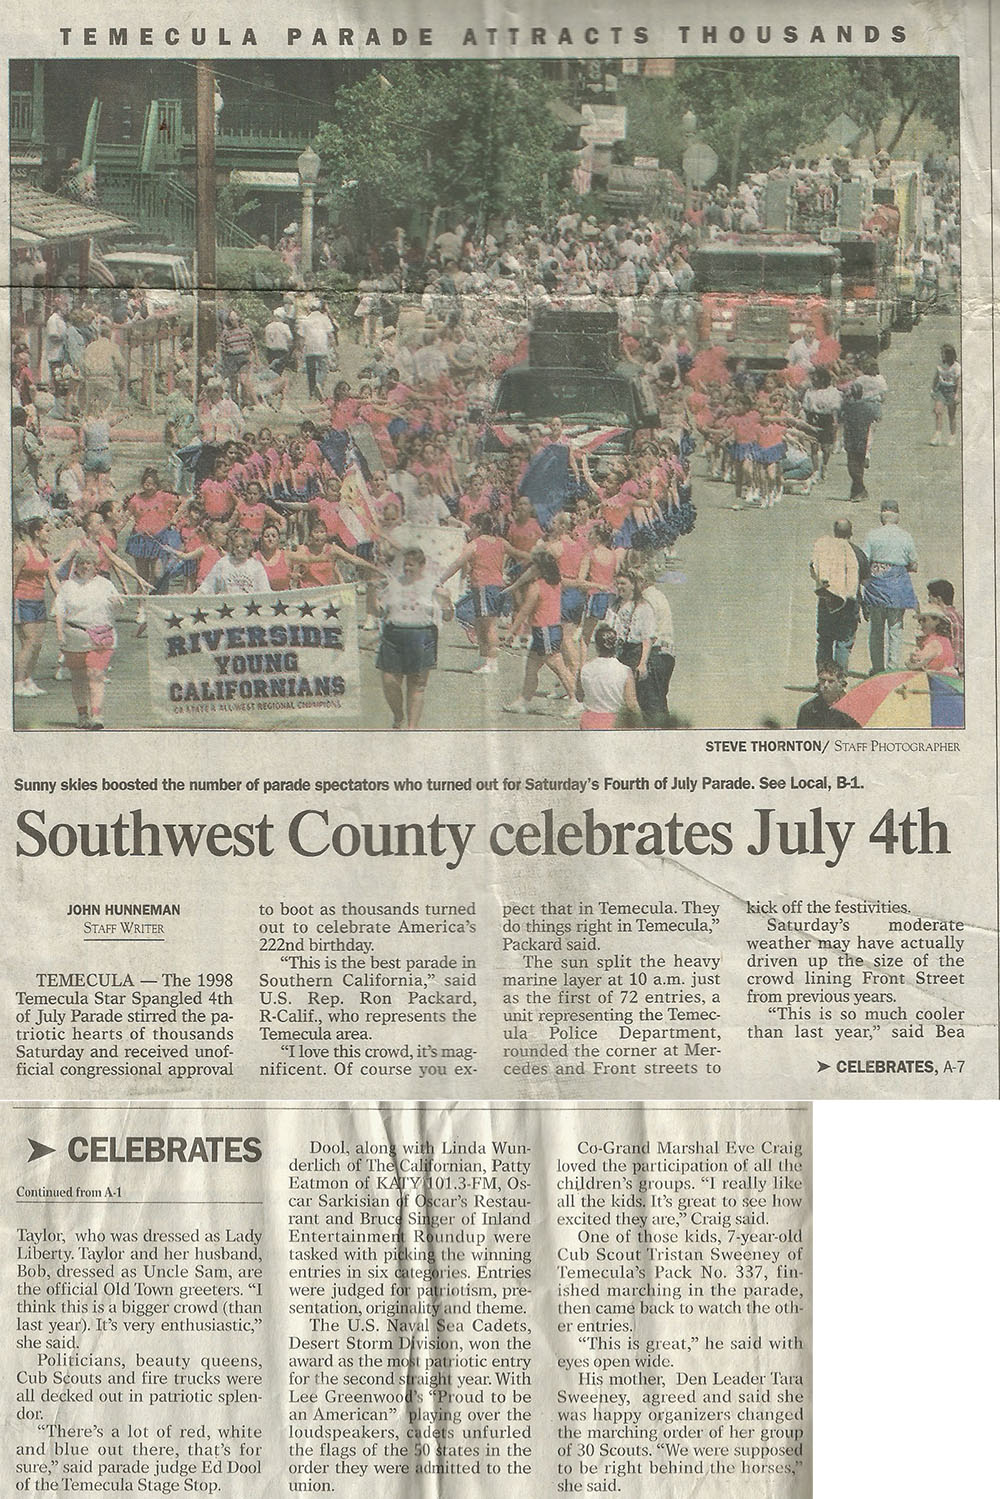 Temecula Parade Attracts Thousands - The Californian - July 1998